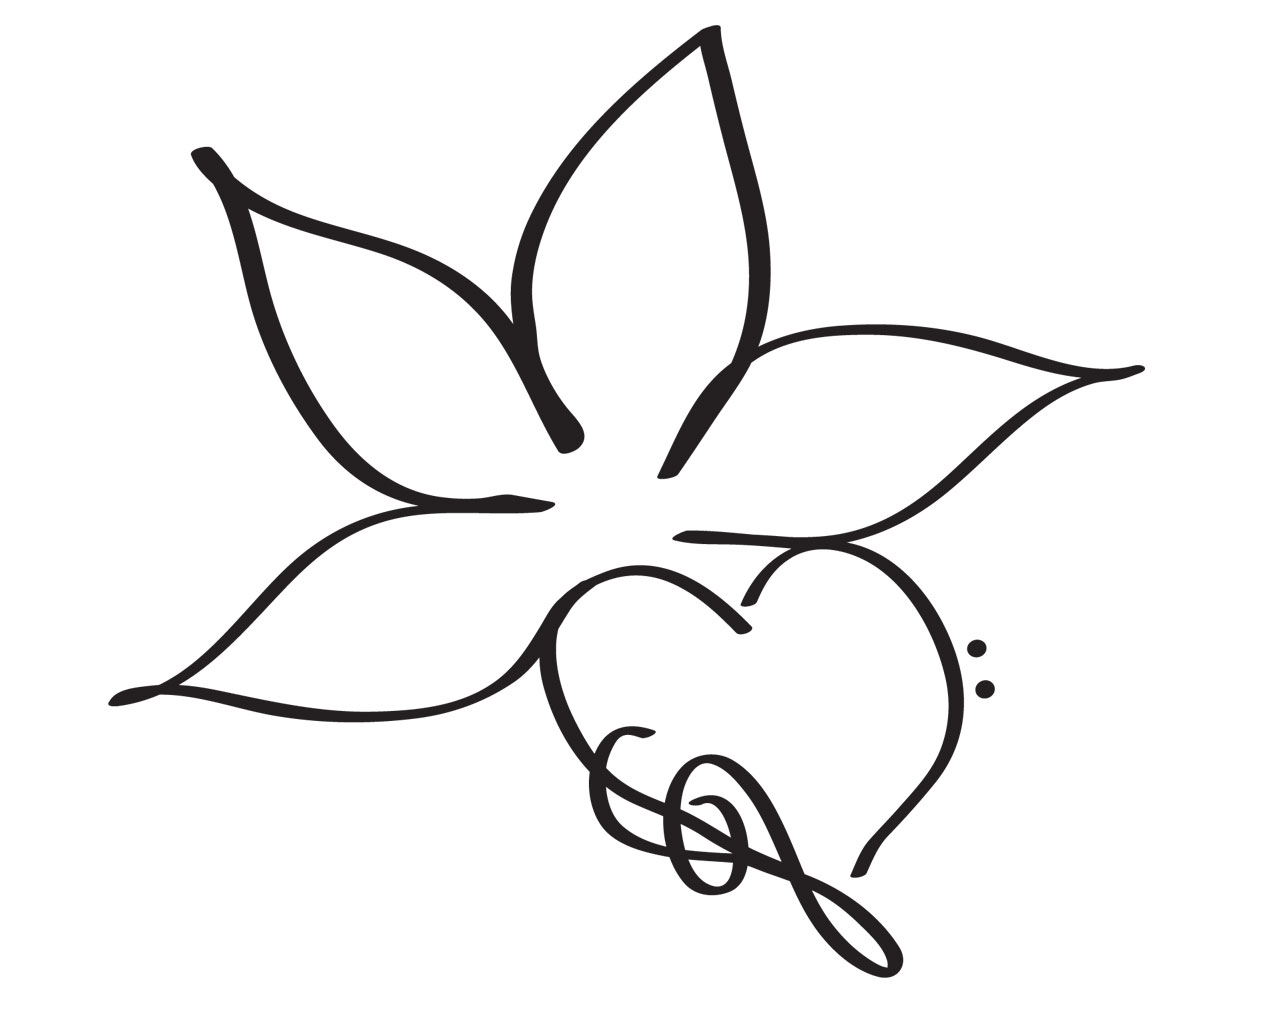 Simple Flower Drawing At Getdrawings Free For Personal Use